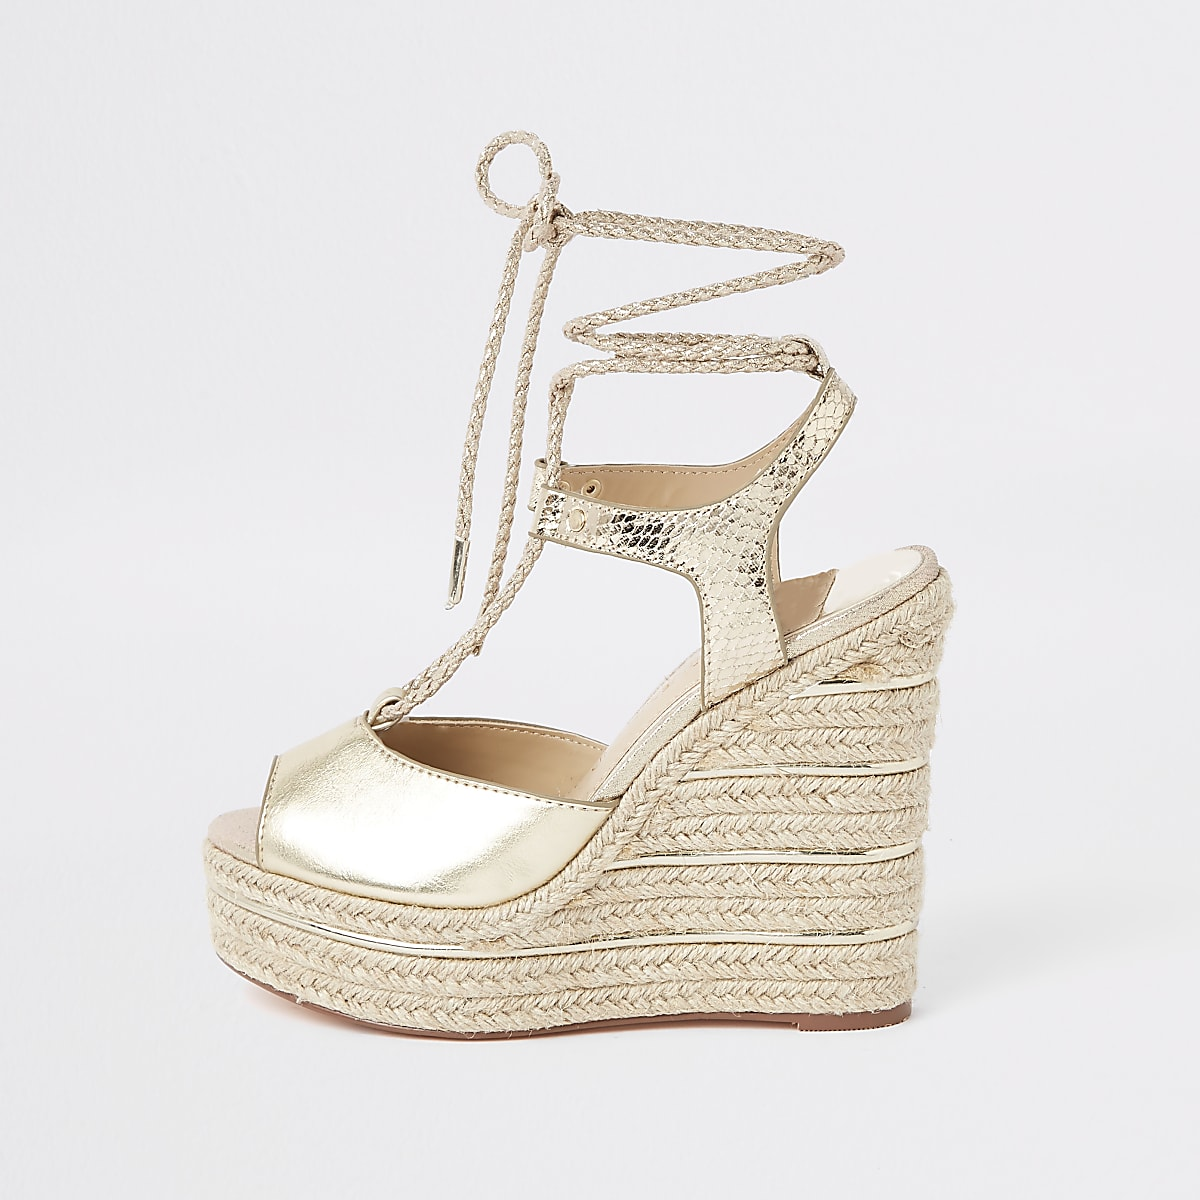 Gold metallic rope tie-up espadrille wedges